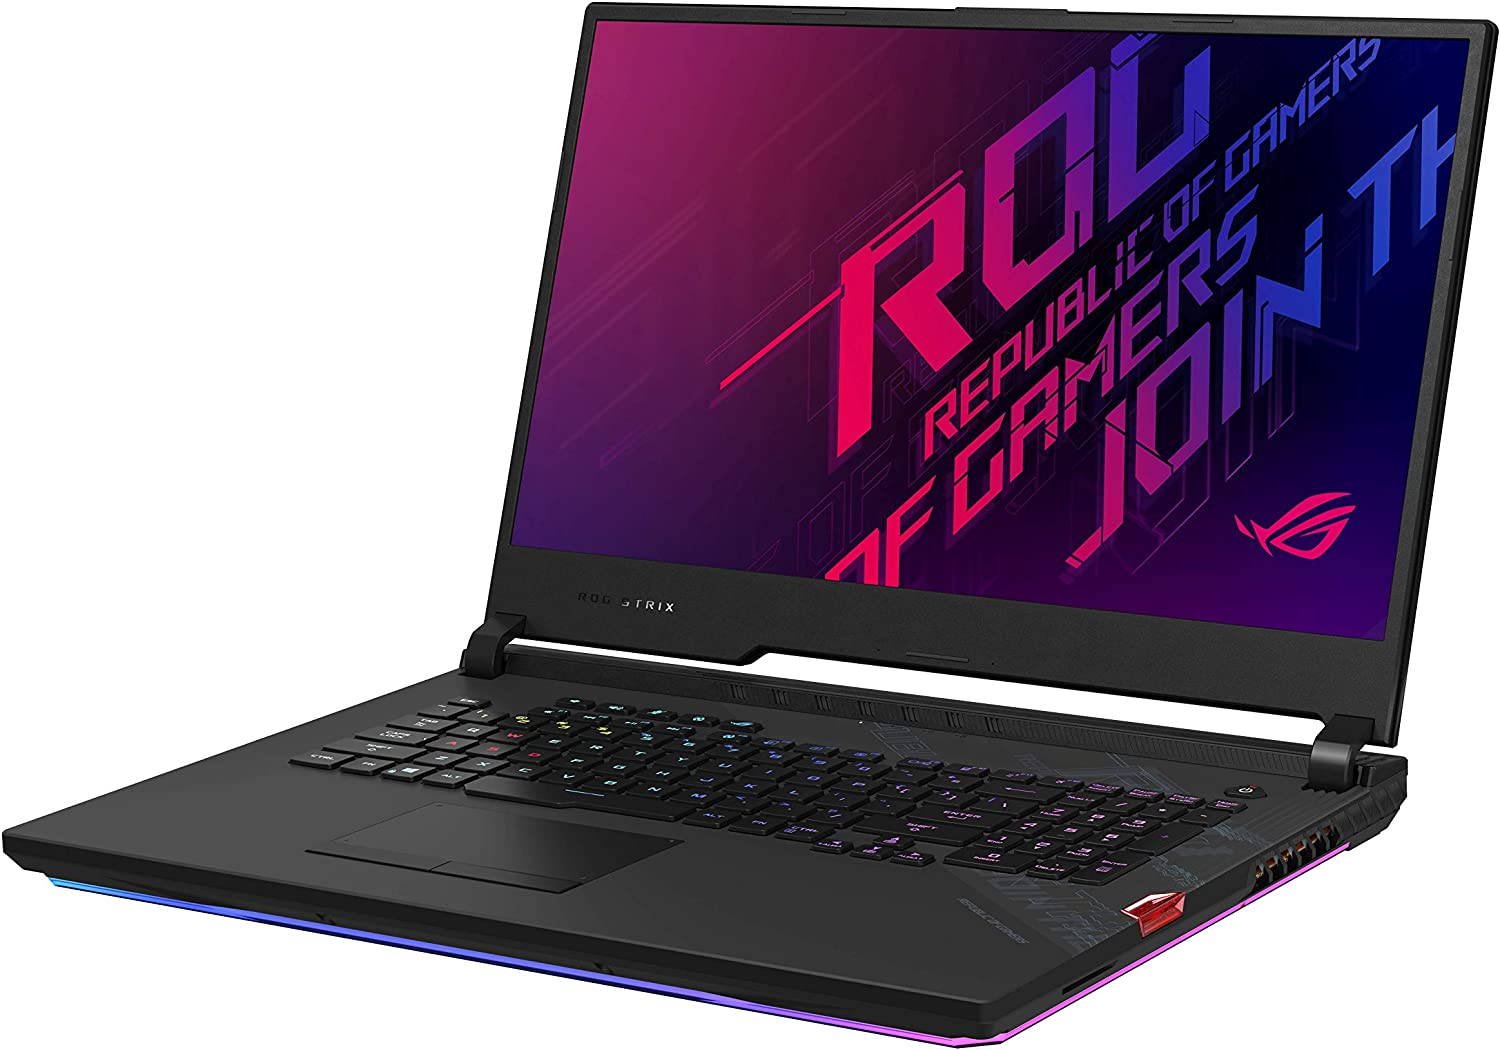 "ASUS ROG Strix Scar 17 Gaming Laptop, 17.3"" 300Hz FHD IPS Type Display, NVIDIA GeForce RTX 2080 Super, Intel Core i9-10980HK, 16GB DDR4, 512GB PCIe SSD, Per-Key RGB Keyboard, Win10 Pro, G732LXS-XS94"